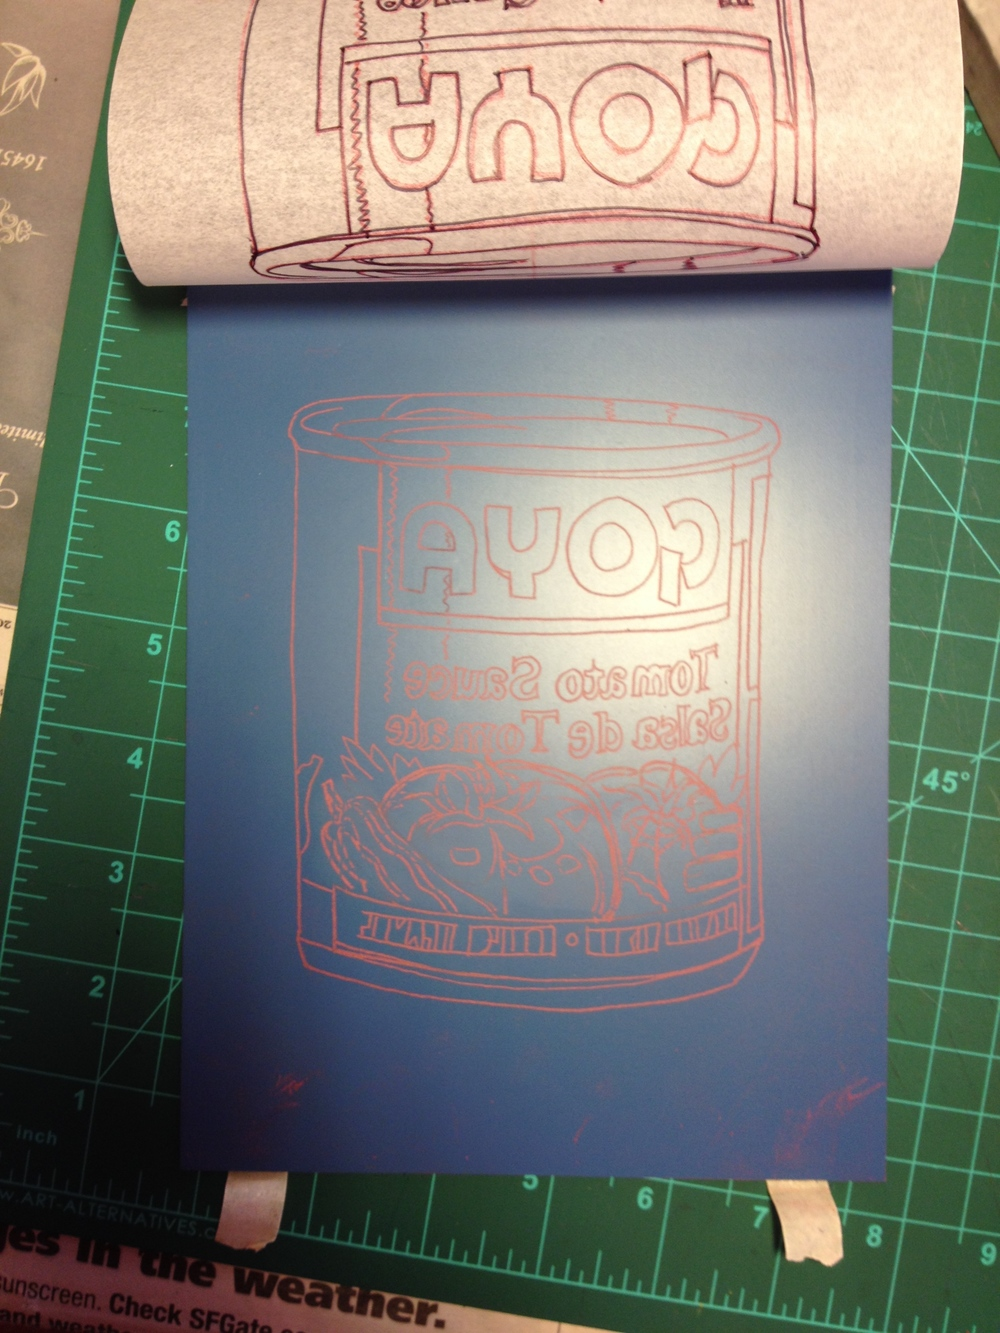 Design transferred.The drawing has been flipped so the text is carved backwards. If that's not done, it will not read right when printed.